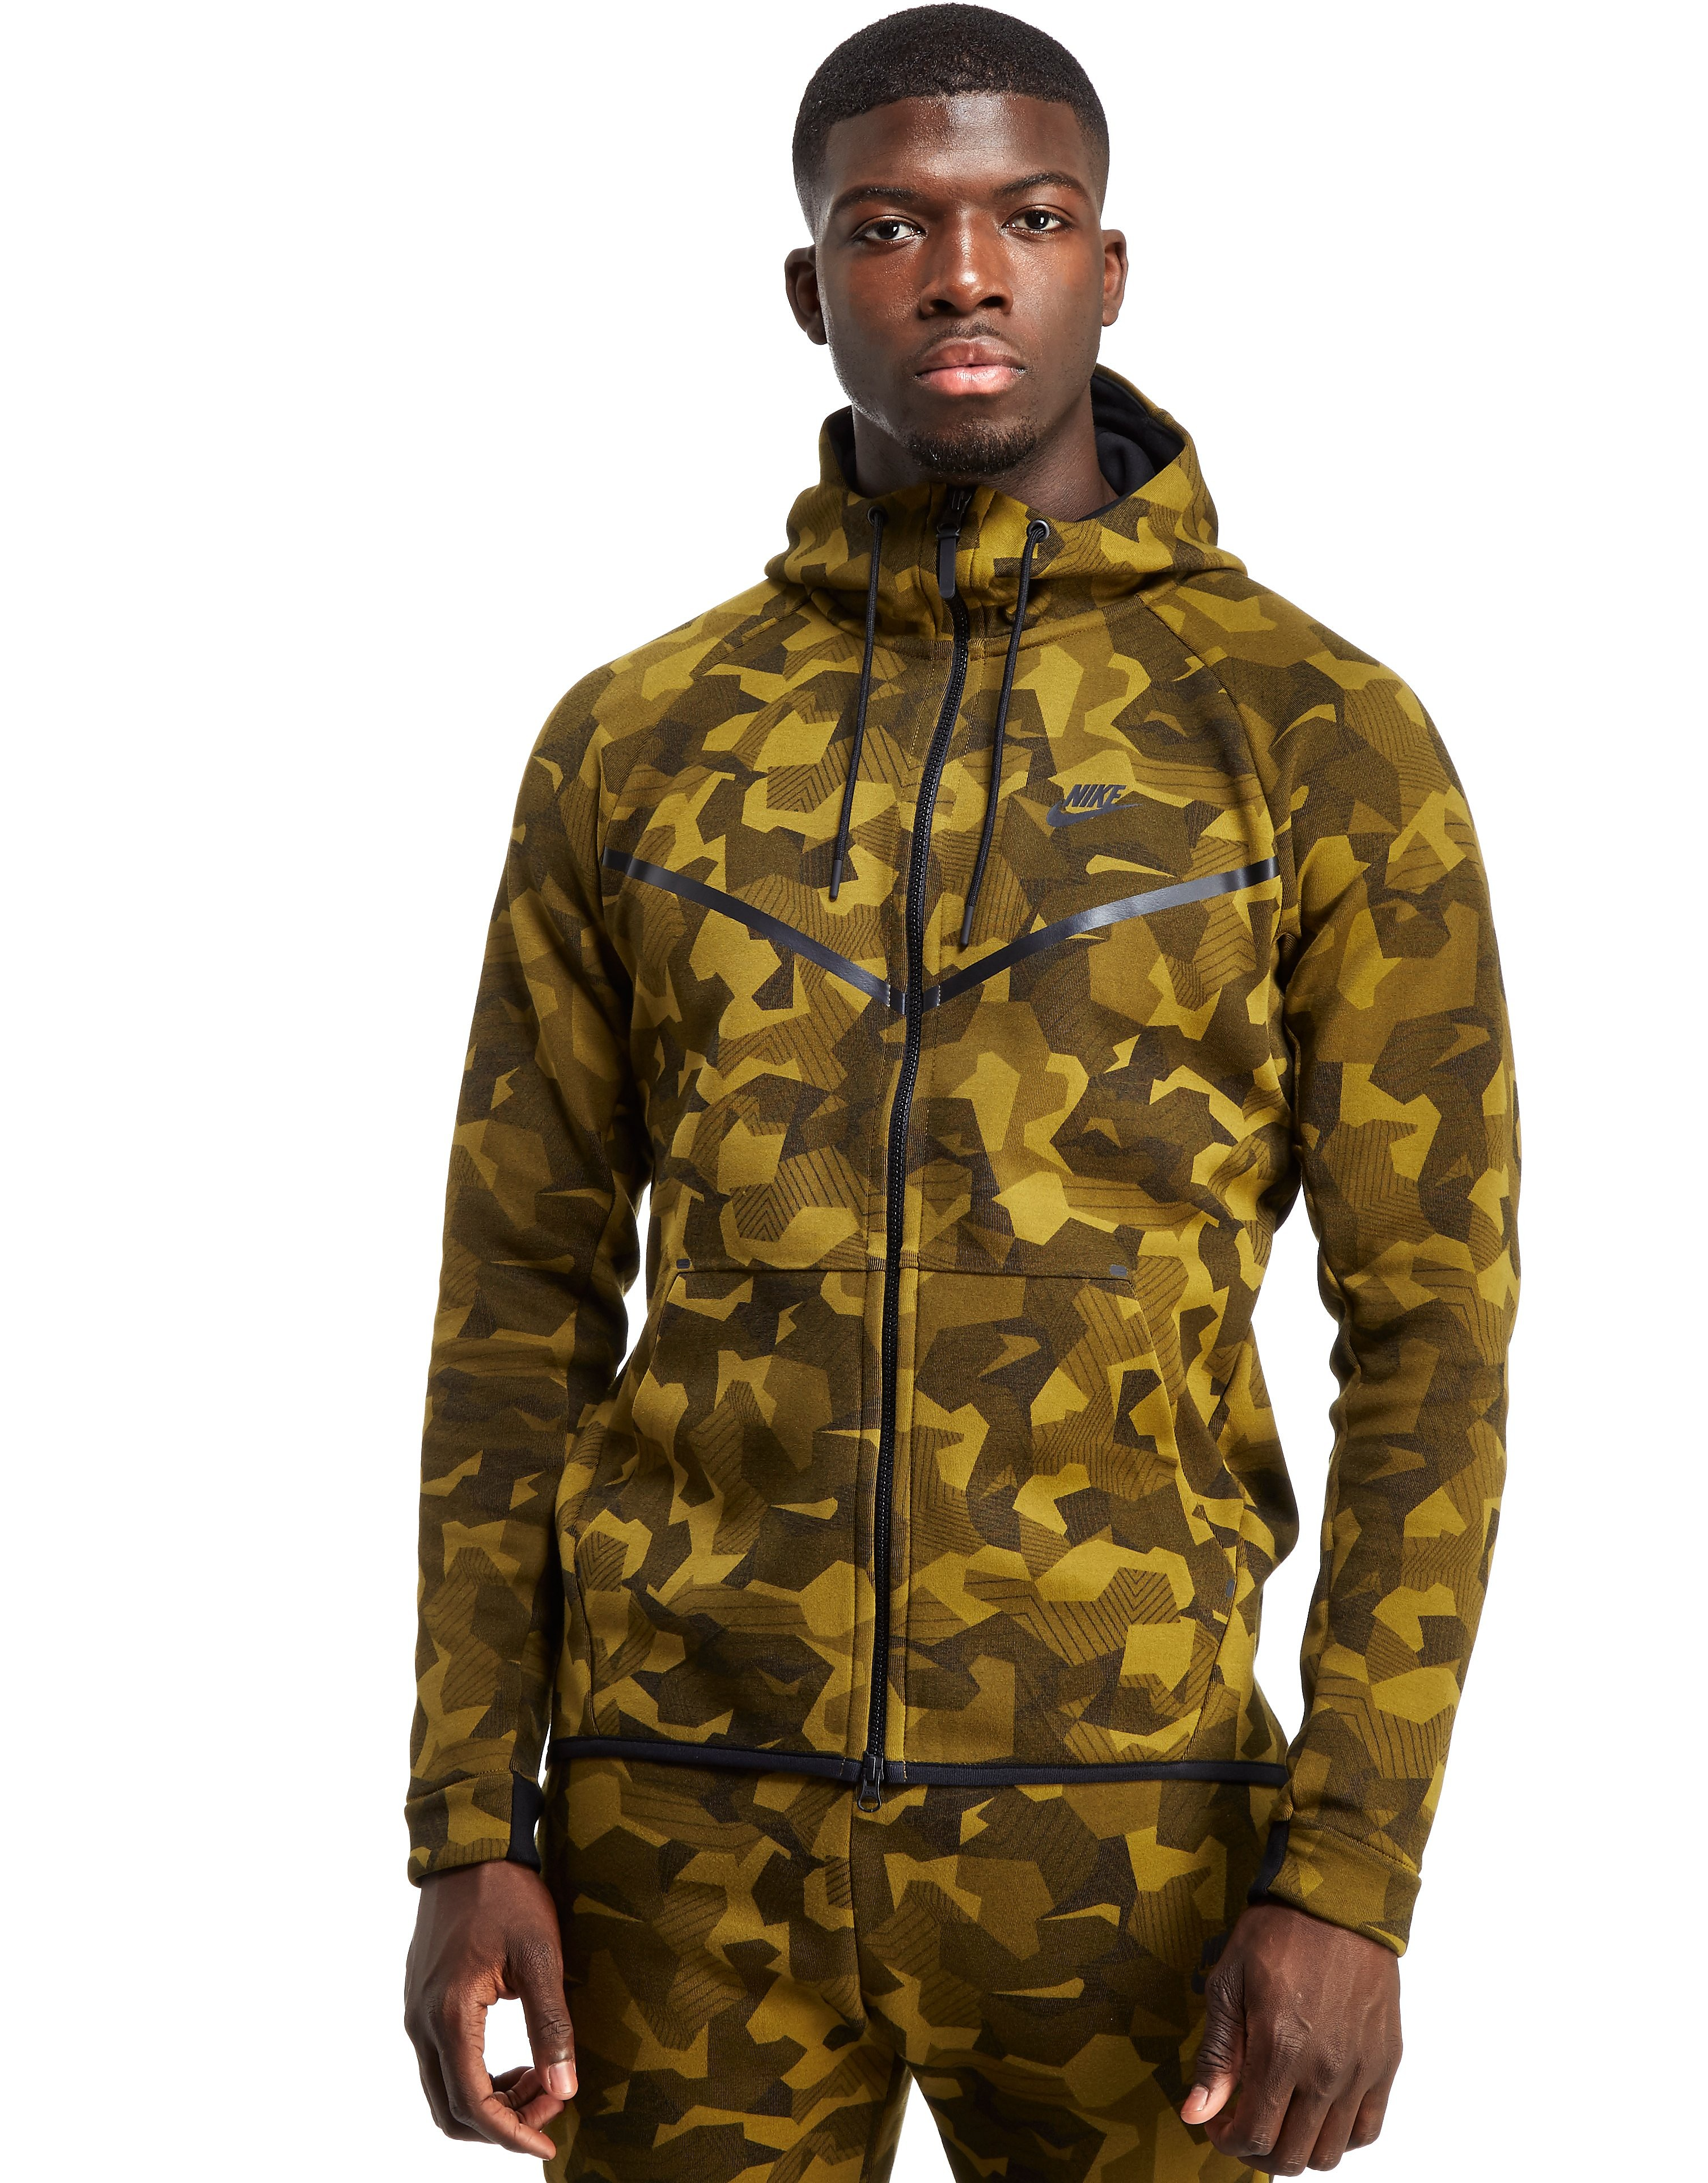 Nike Sudadera Tech Camo Fleece Windrunner con capucha